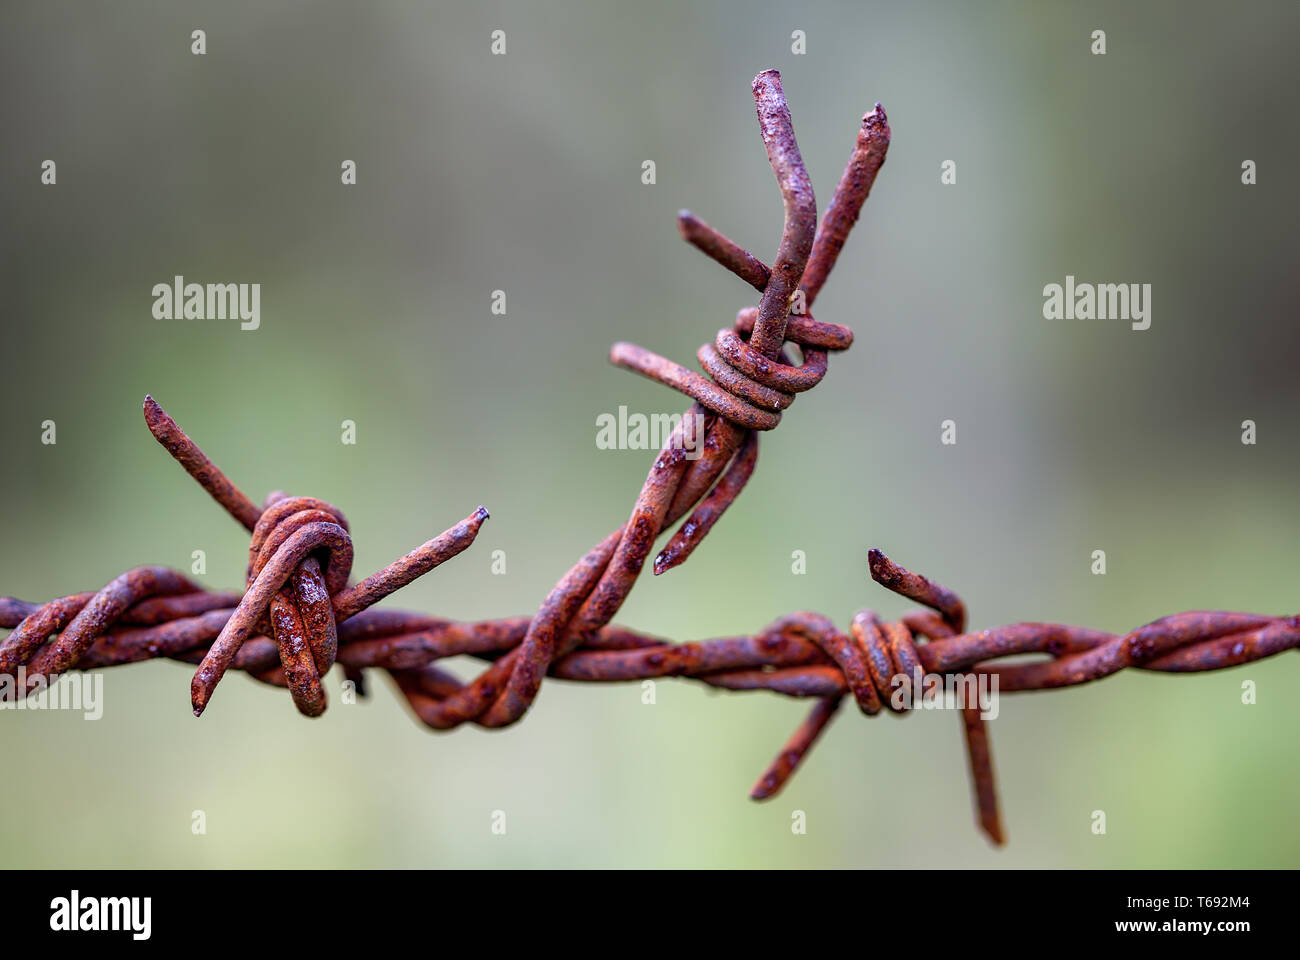 Macro photography of a piece of rusted barbed wire used in fences at the countryside of the Andean mountains of central Colombia. Stock Photo